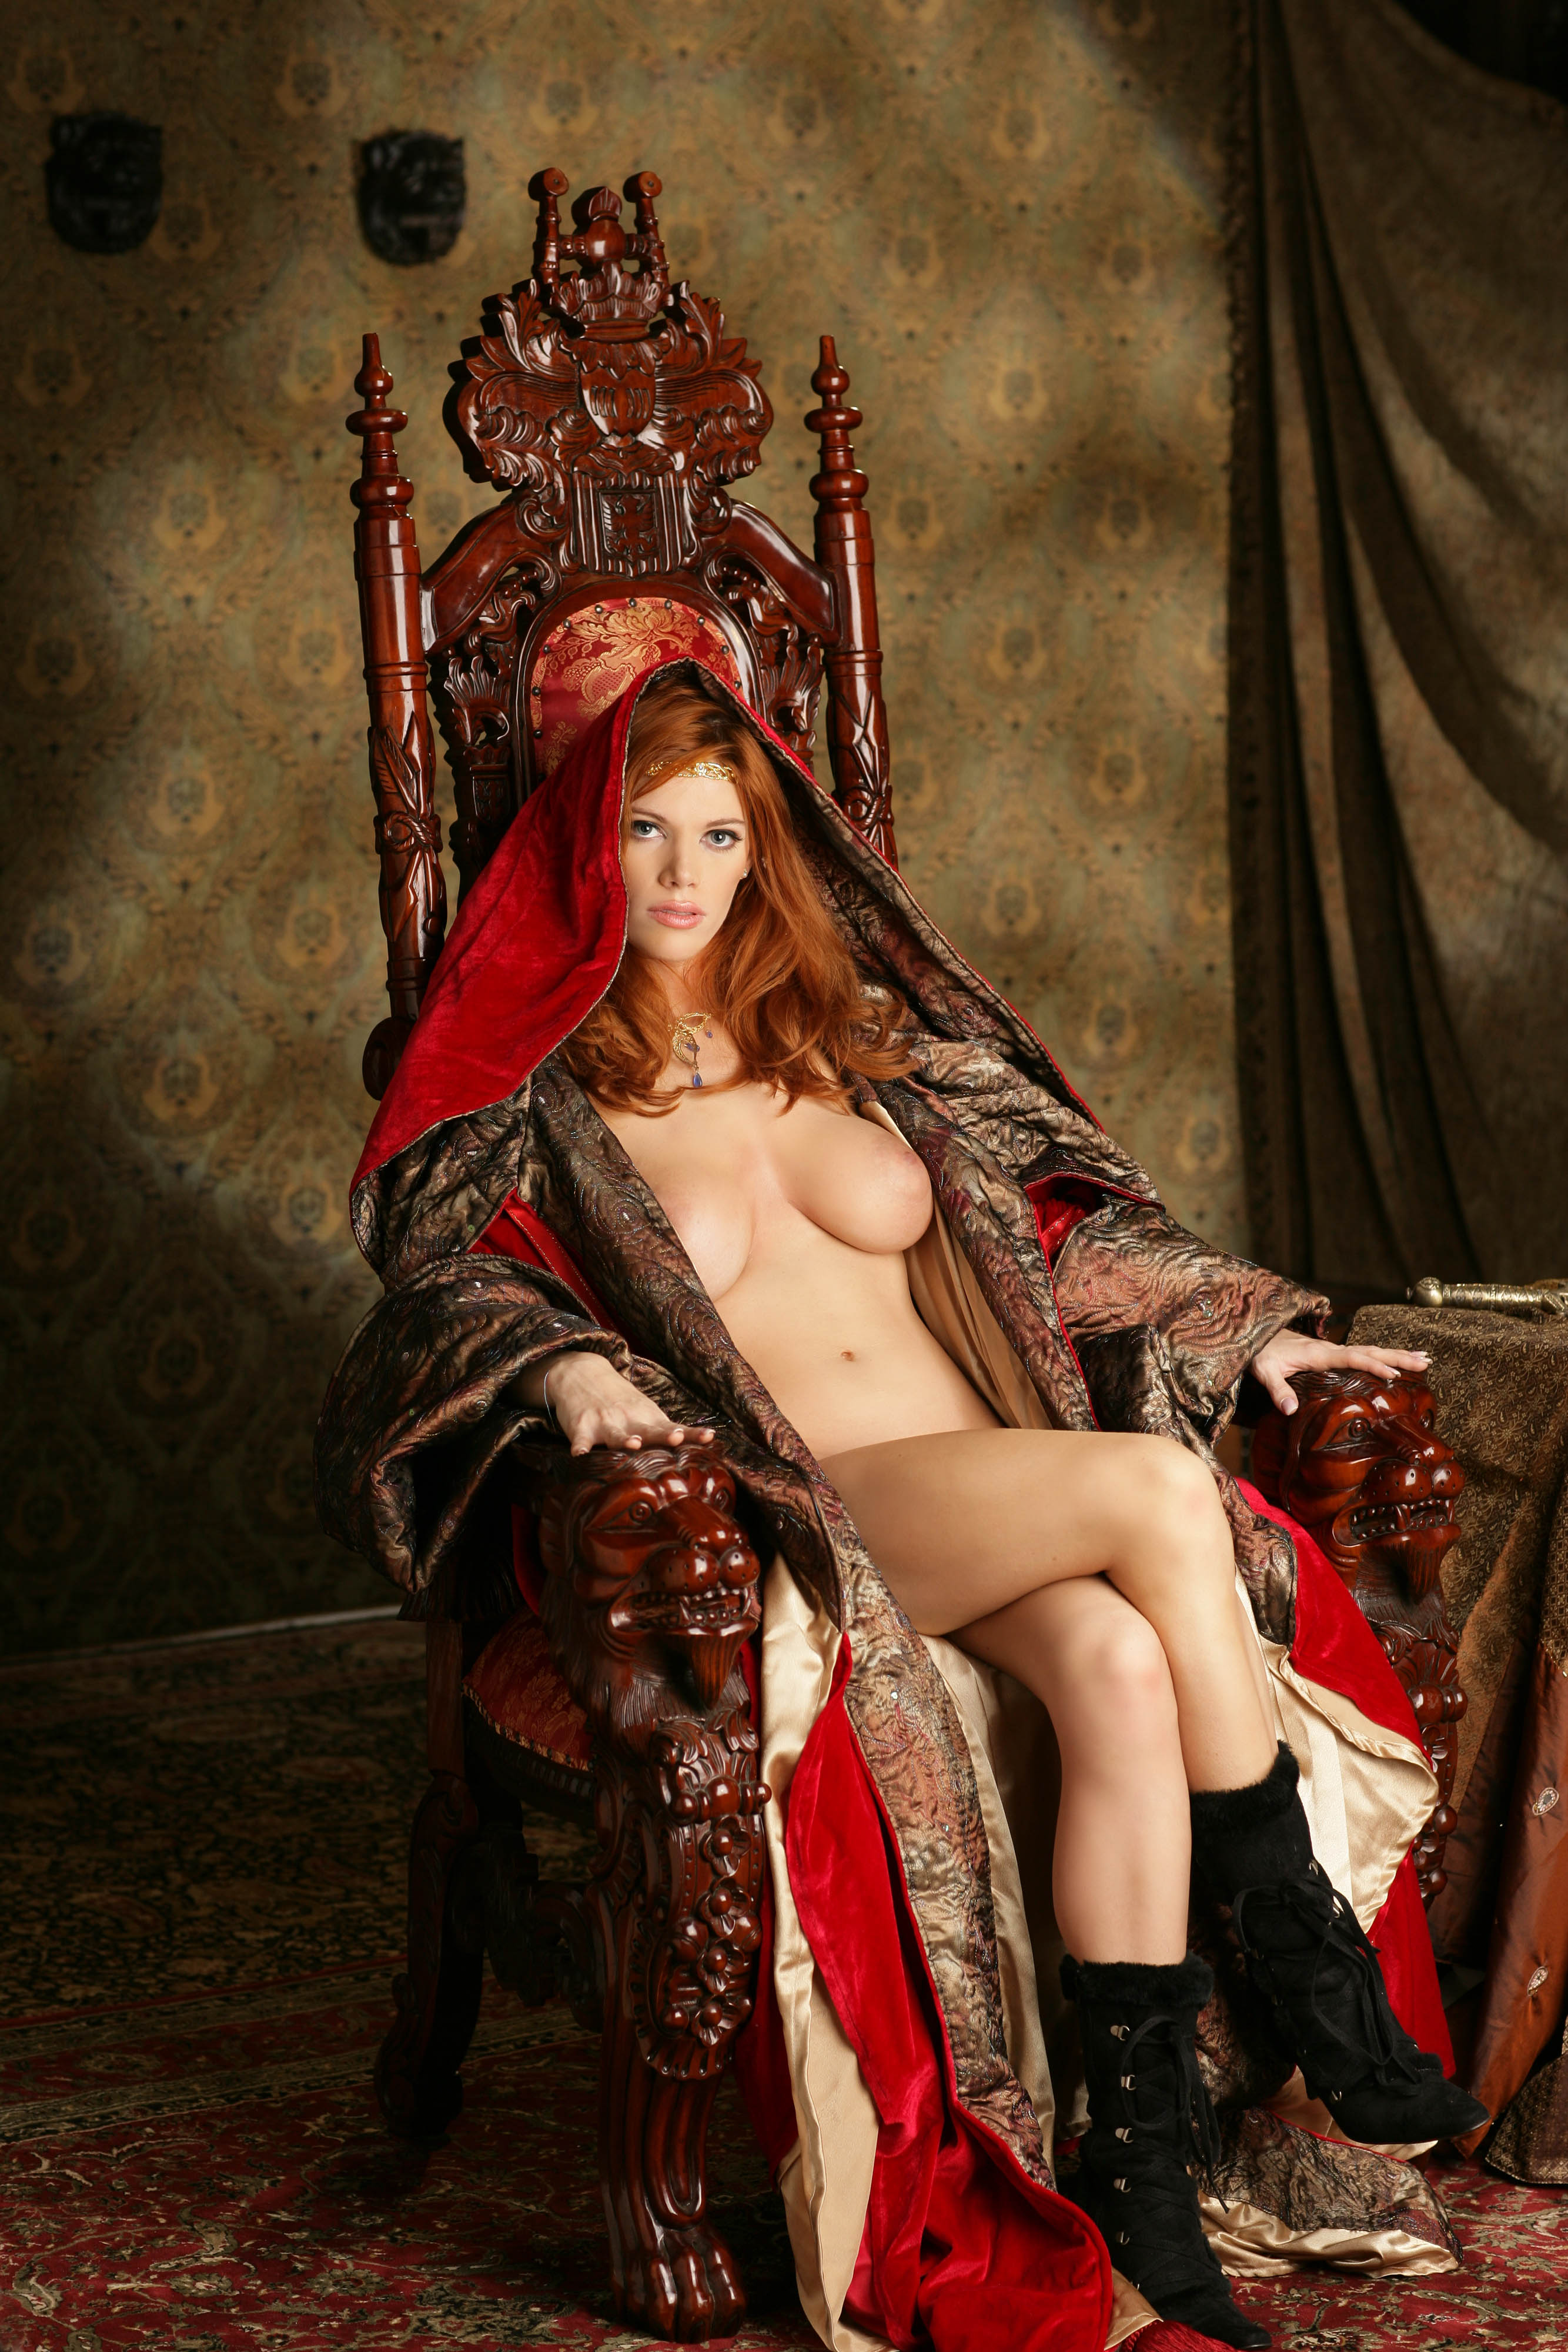 Medieval Village Girls Kari S And Susan Sapphic Strip Naked And Fondle Each Other